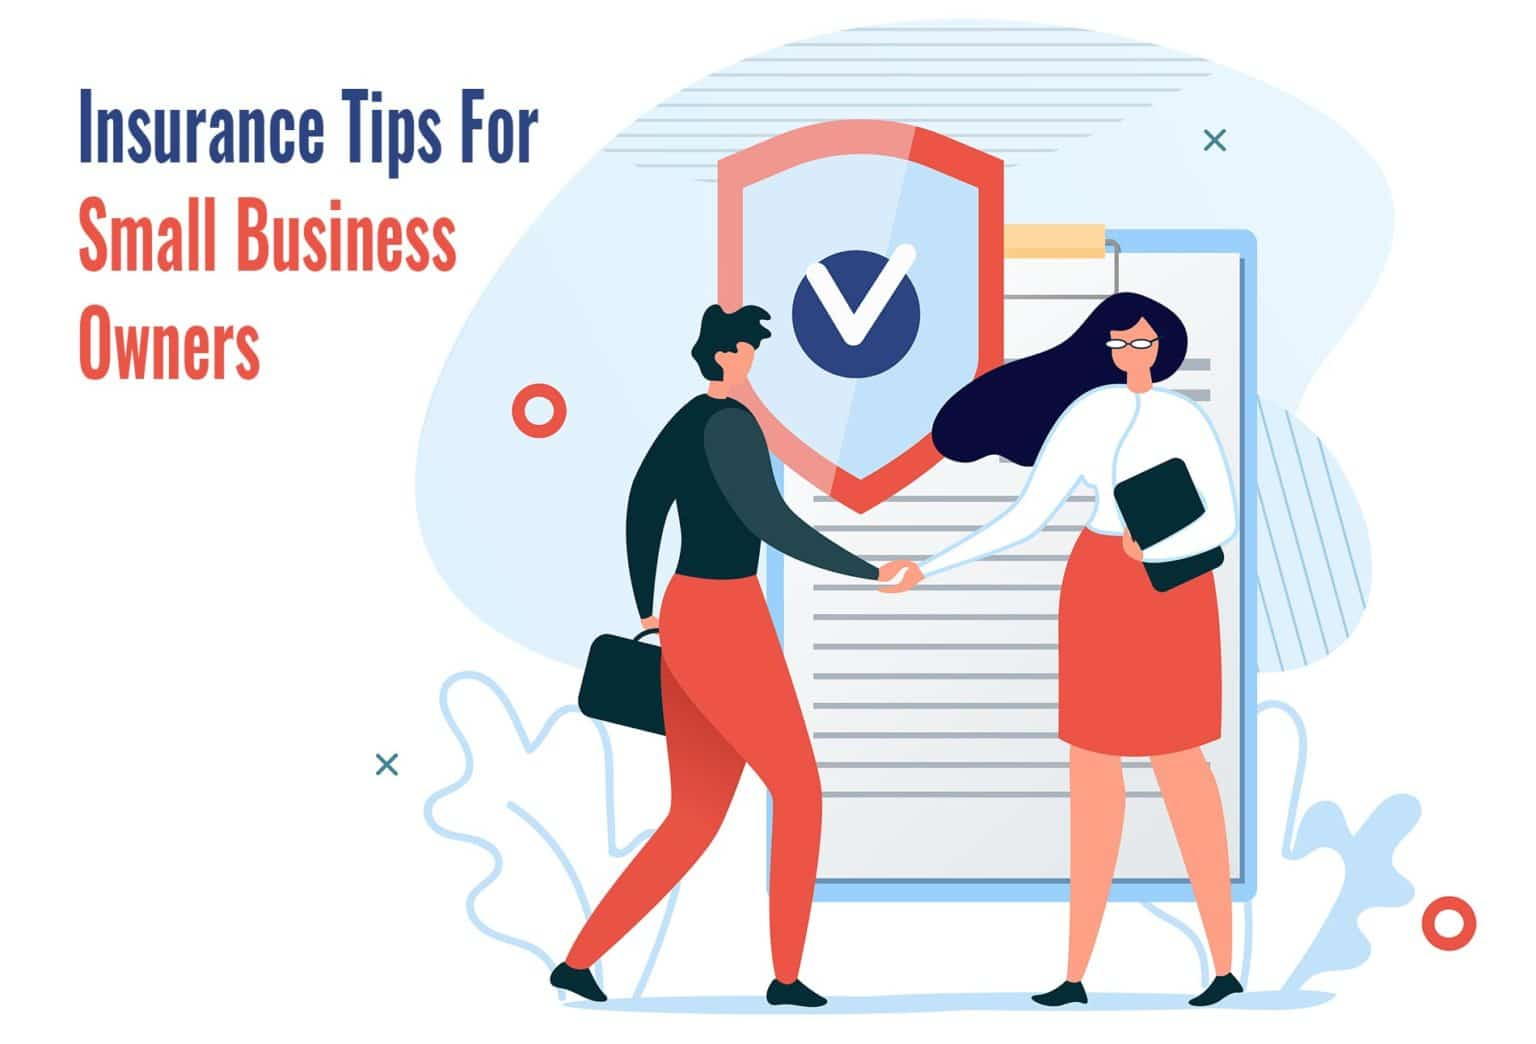 Insurance tips for small business owners